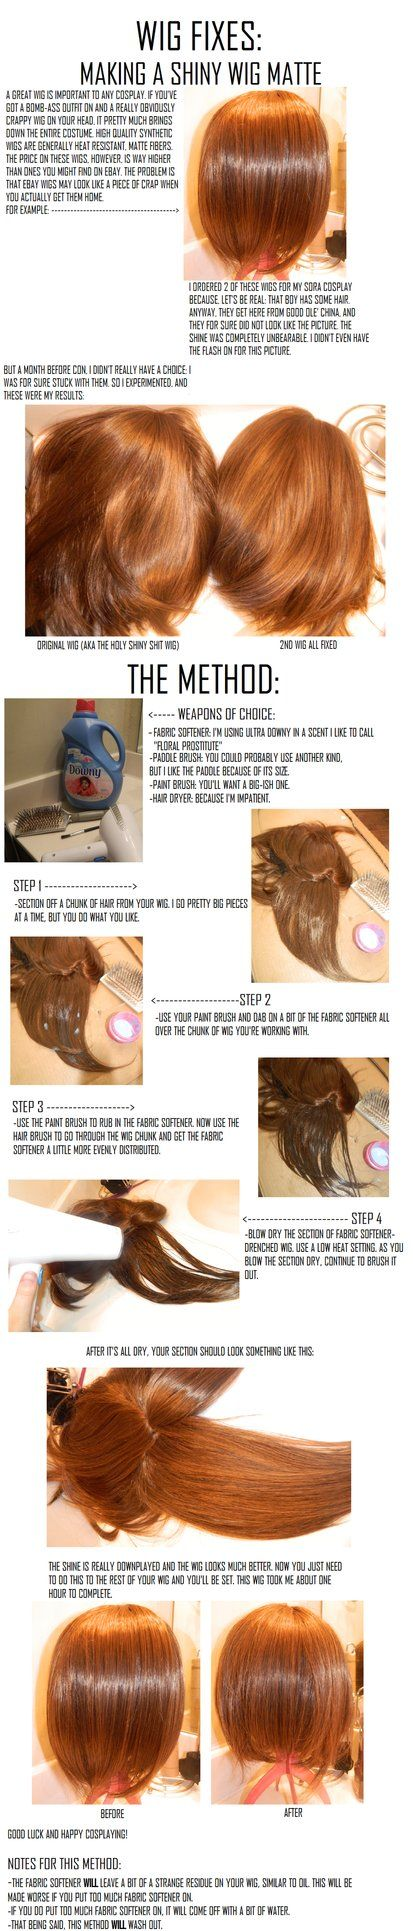 Cosplay Wigs: Taking away wig shine by ~cosplay--tutorials on deviantART #Cosplay